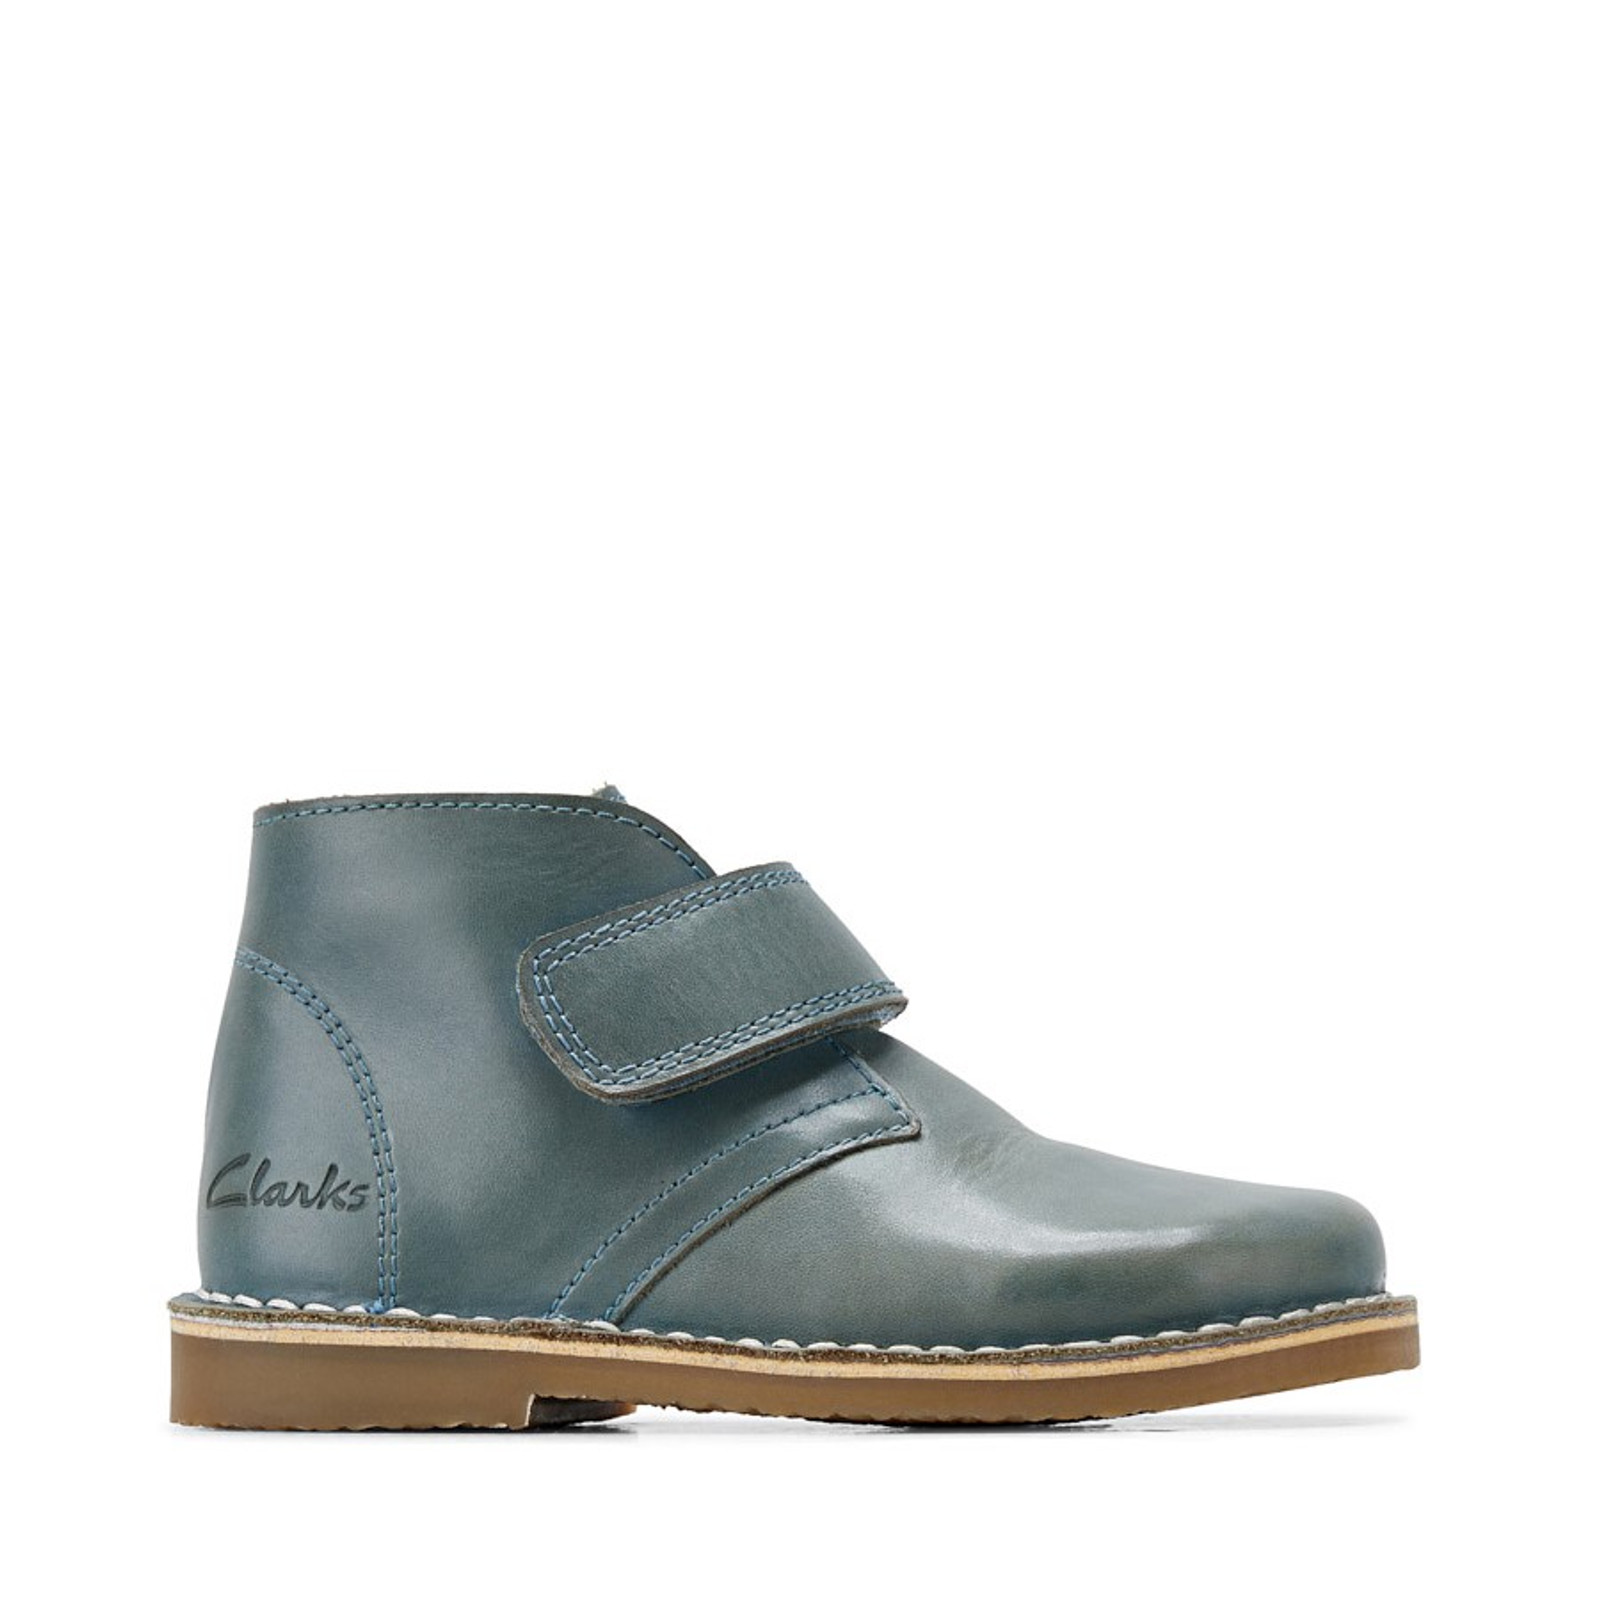 Clarks Boys VANCE Hunter Green